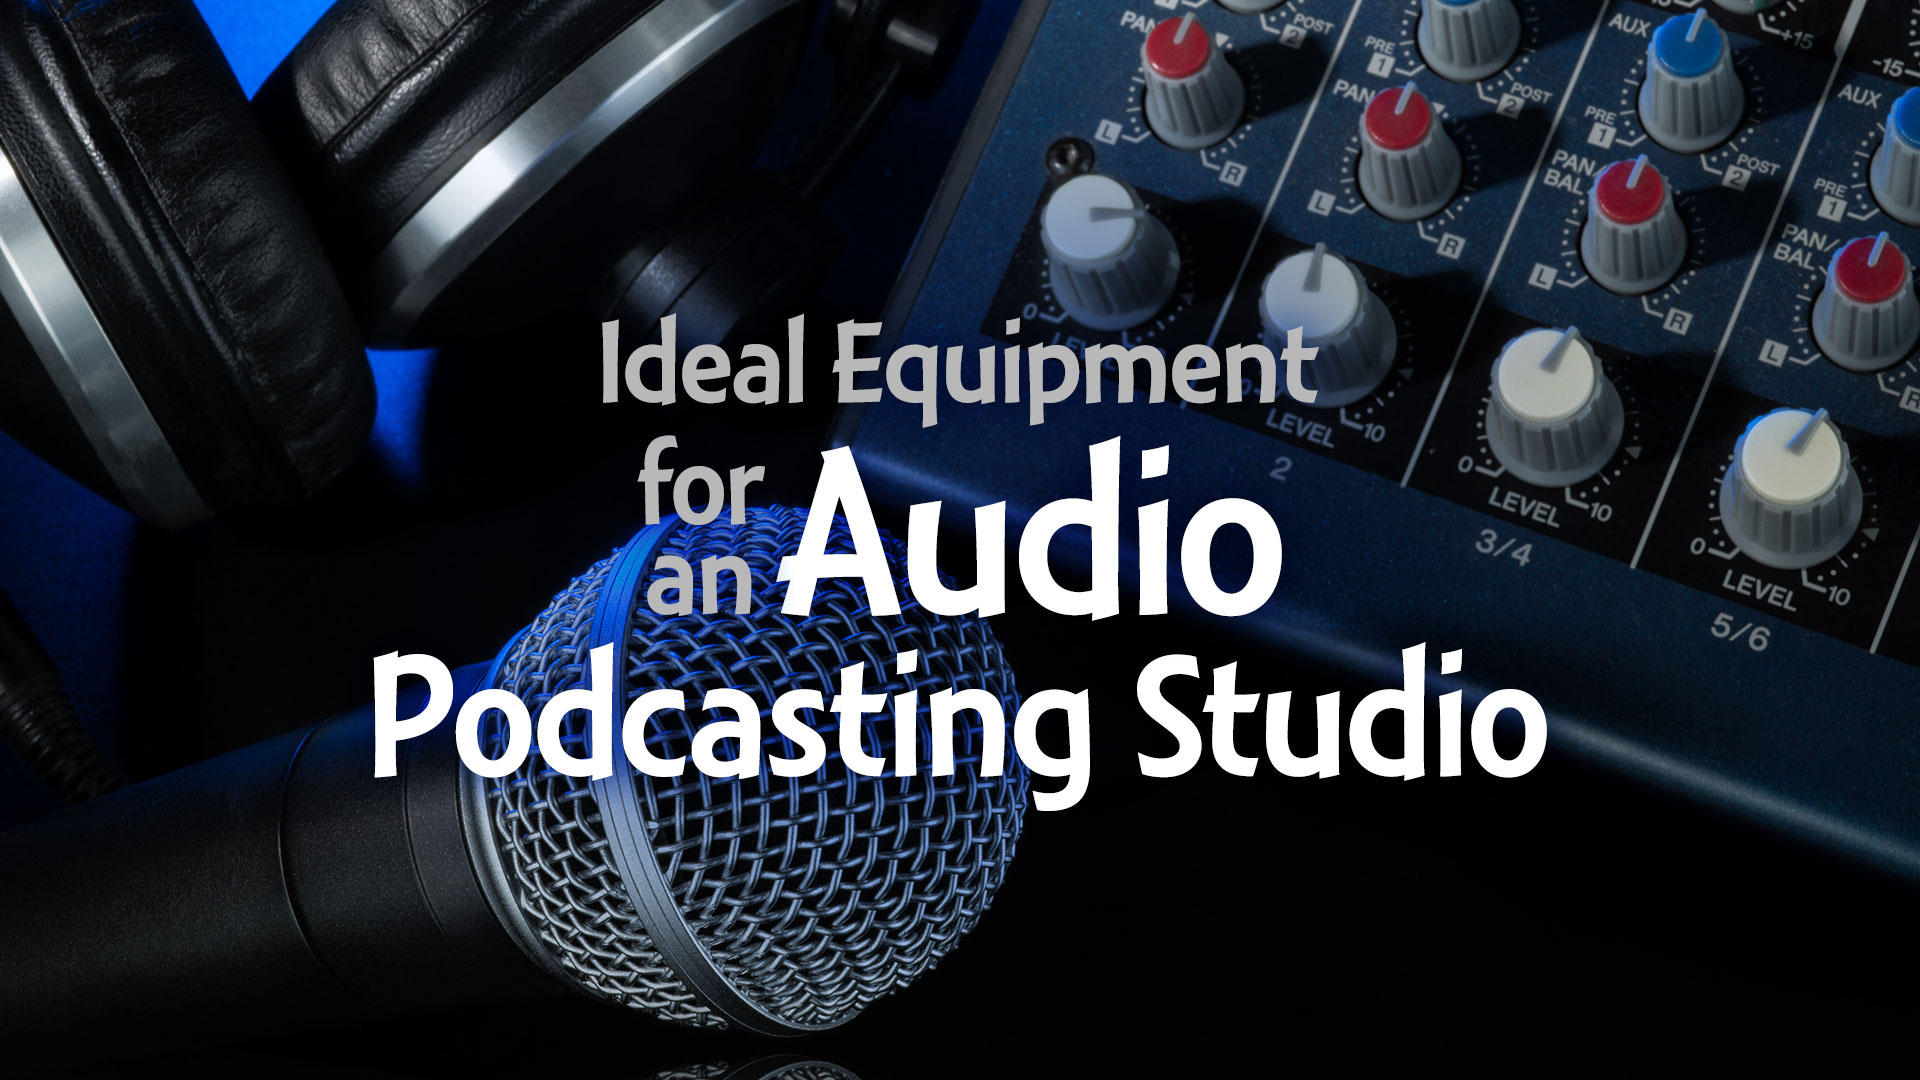 Ideal-Equipment-for-an-Audio-Podcasting-